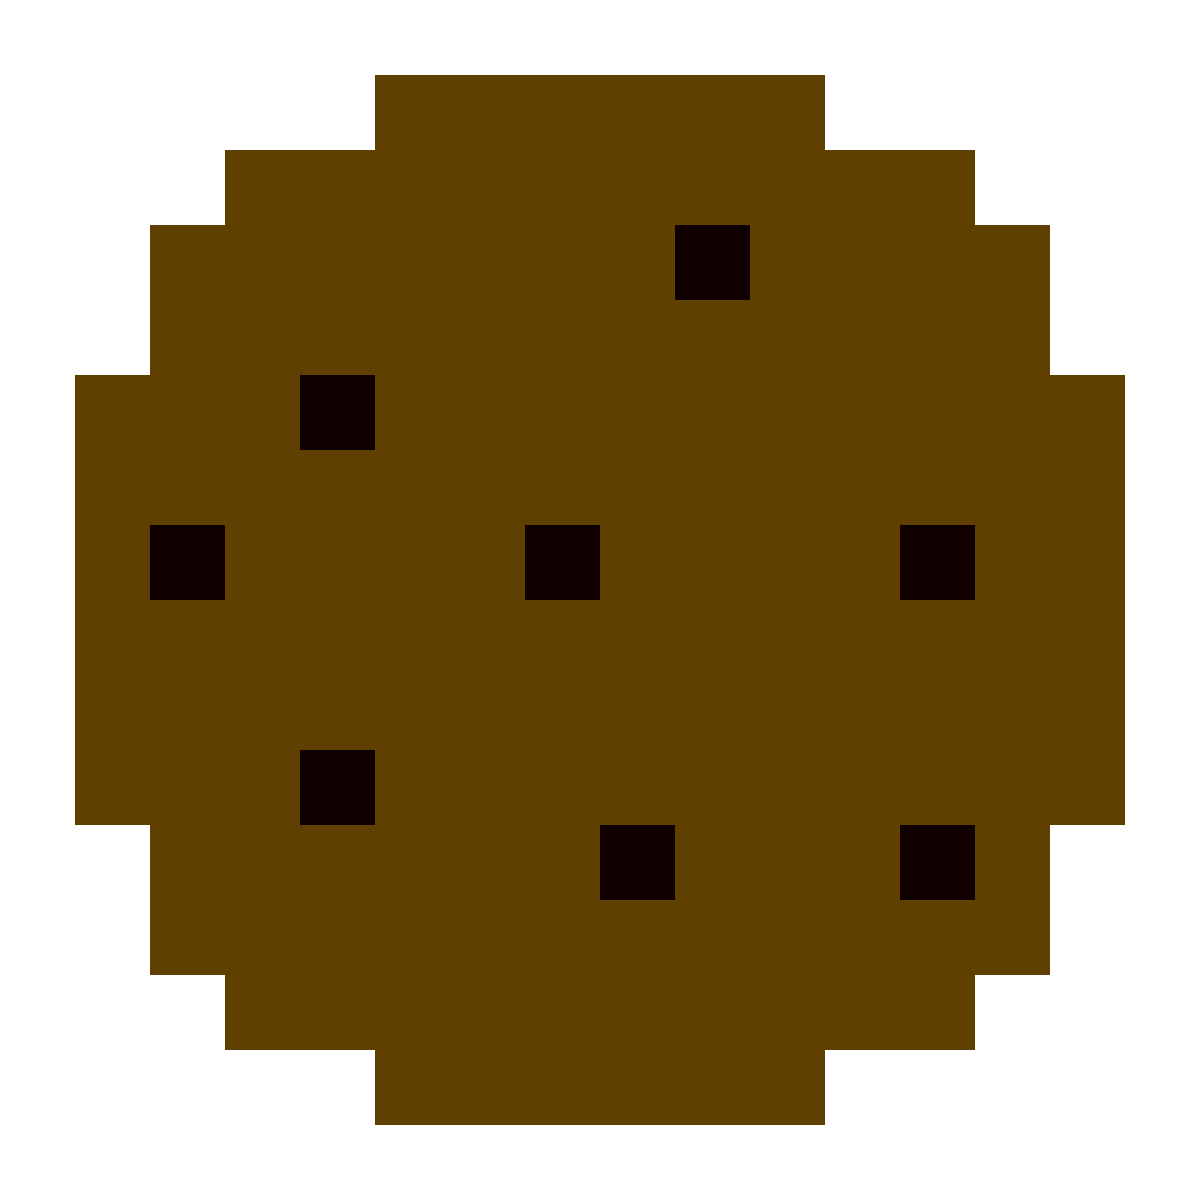 Chocolate Chip Cookie (NES-Style) by Rowan39